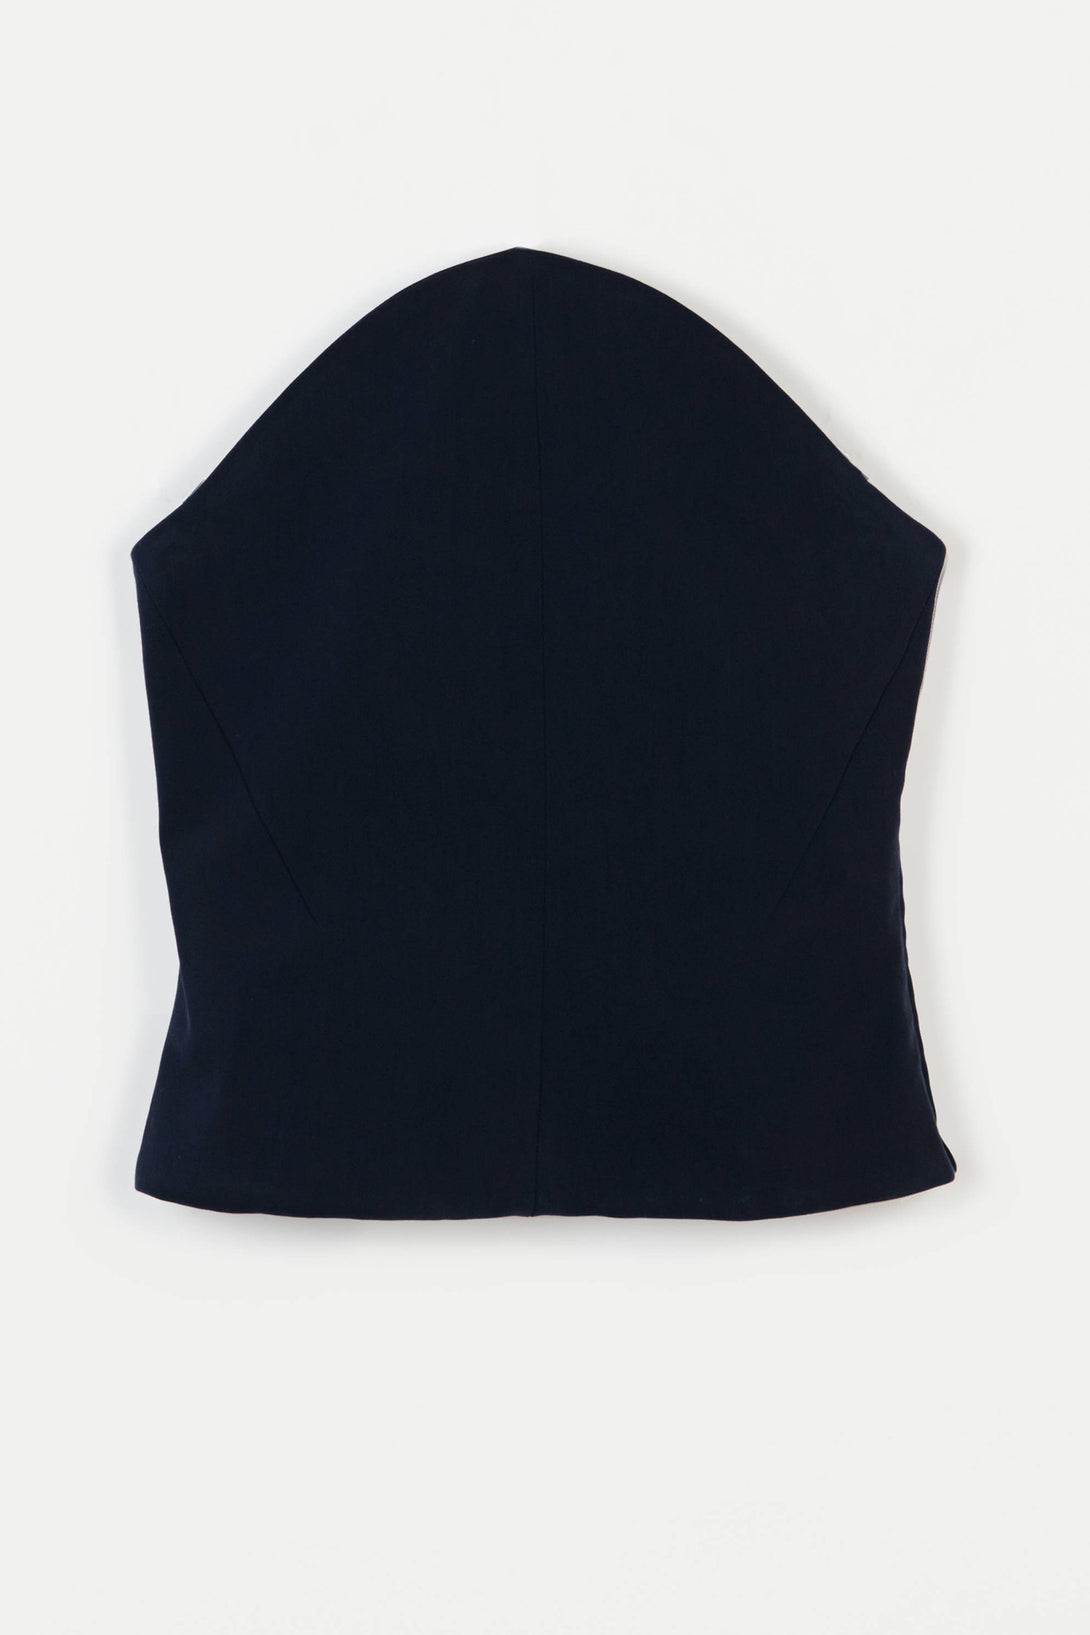 Bustier 01 Curve Bustier - Navy